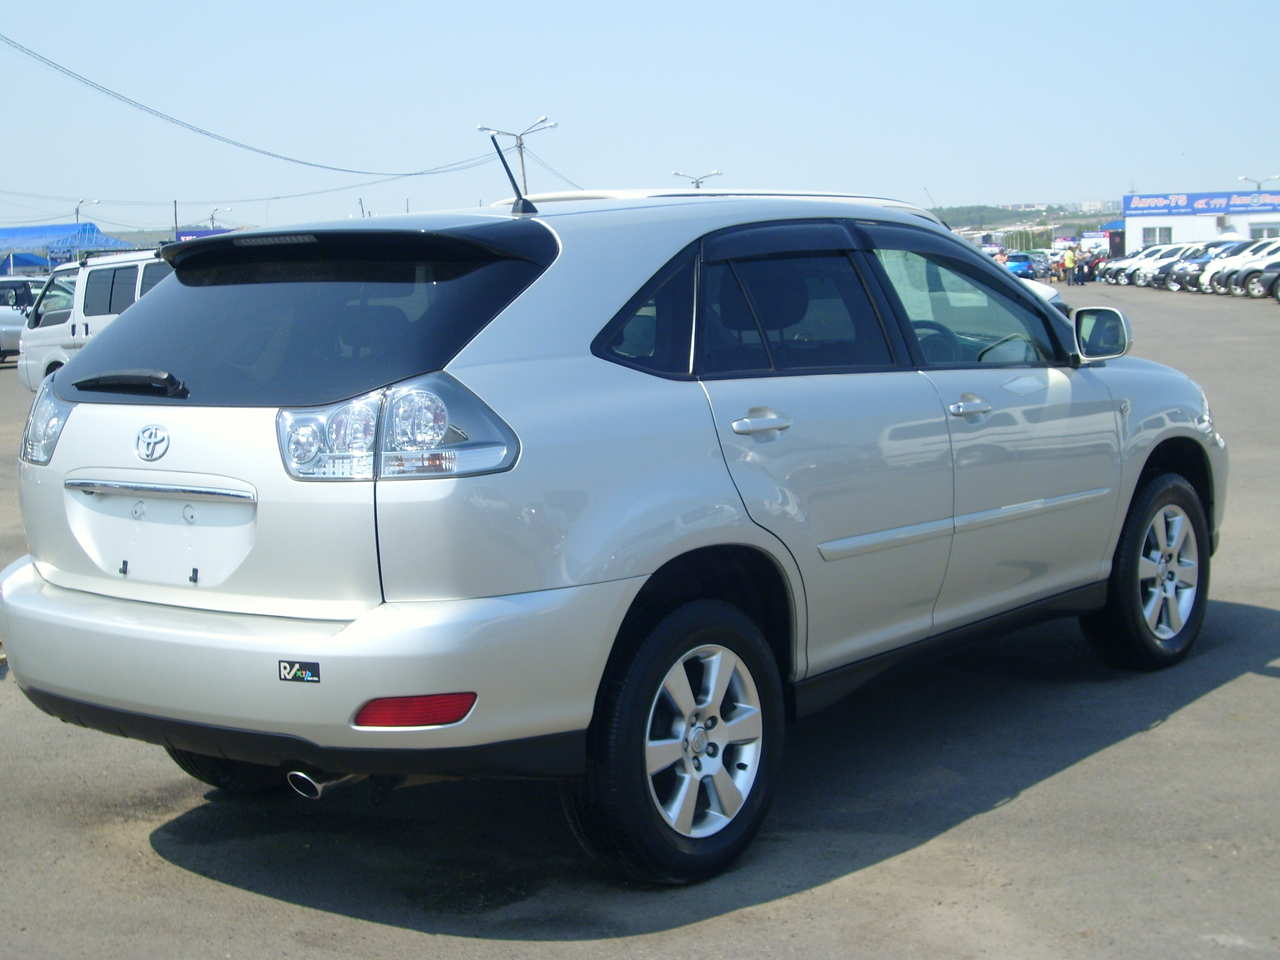 Used 2004 Toyota Harrier Photos 2400cc Gasoline Ff